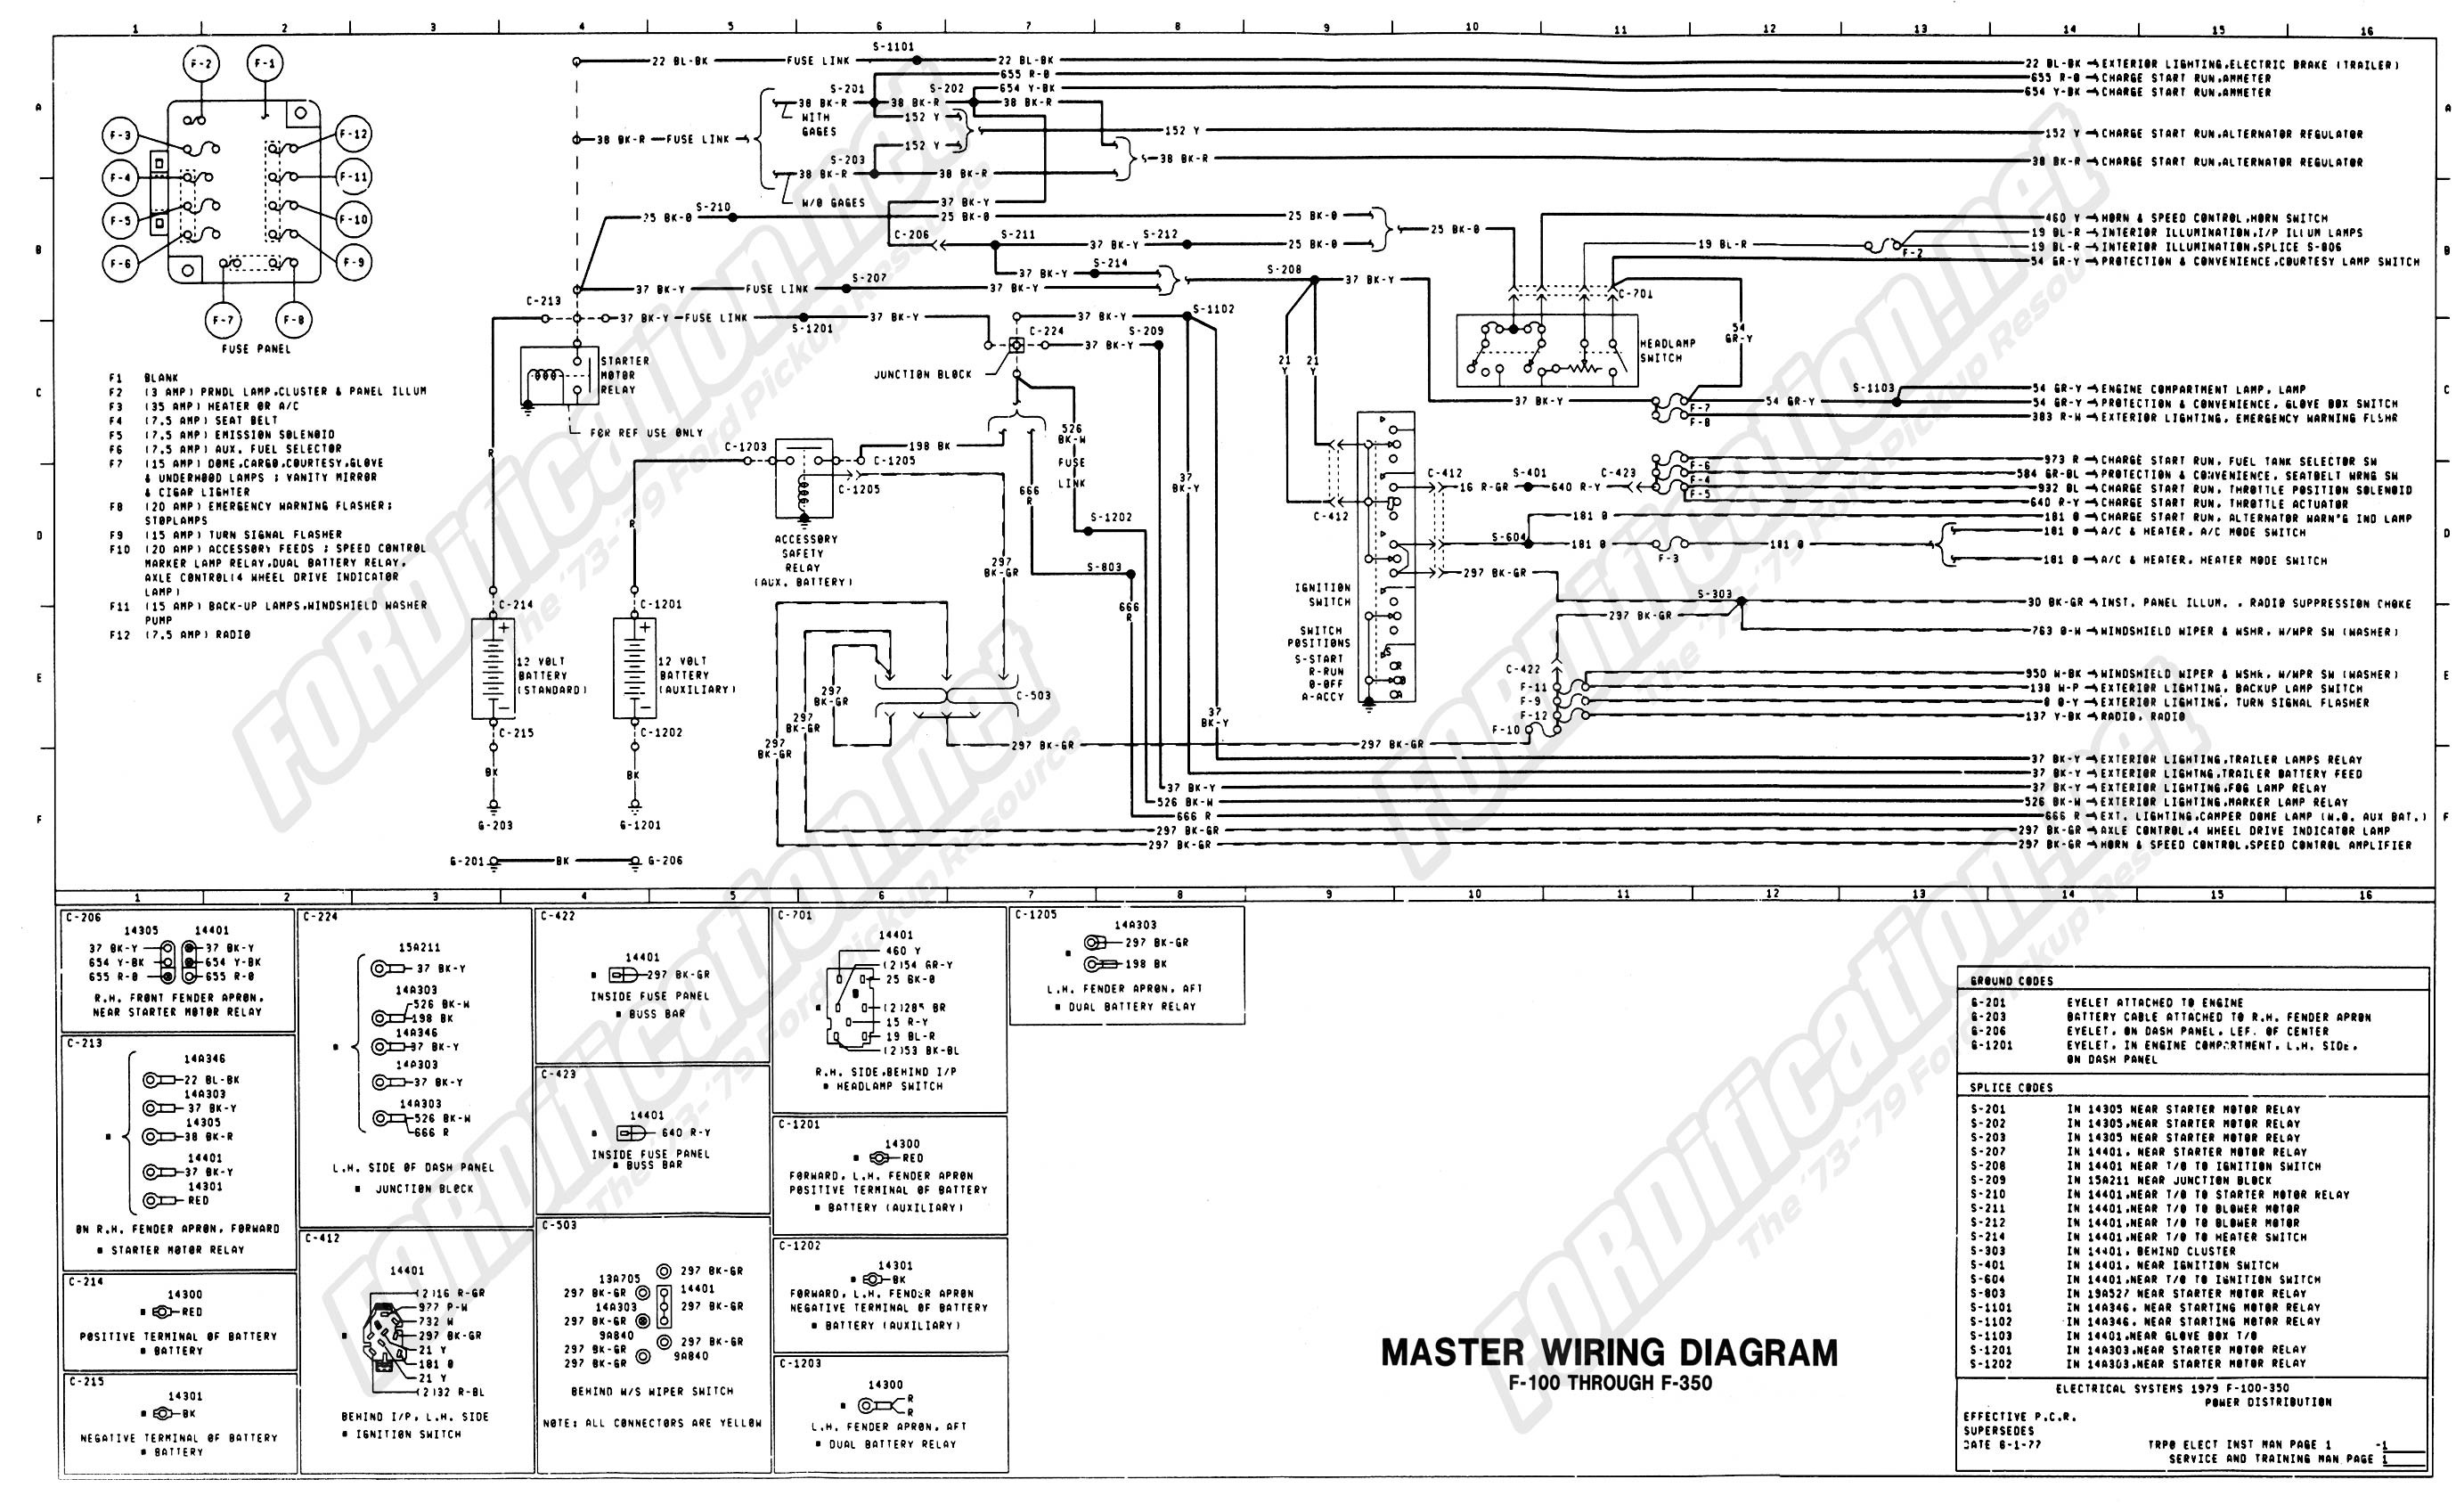 Ford Truck Parts Diagram 79 F150 solenoid Wiring Diagram ford Truck Enthusiasts forums Of Ford Truck Parts Diagram